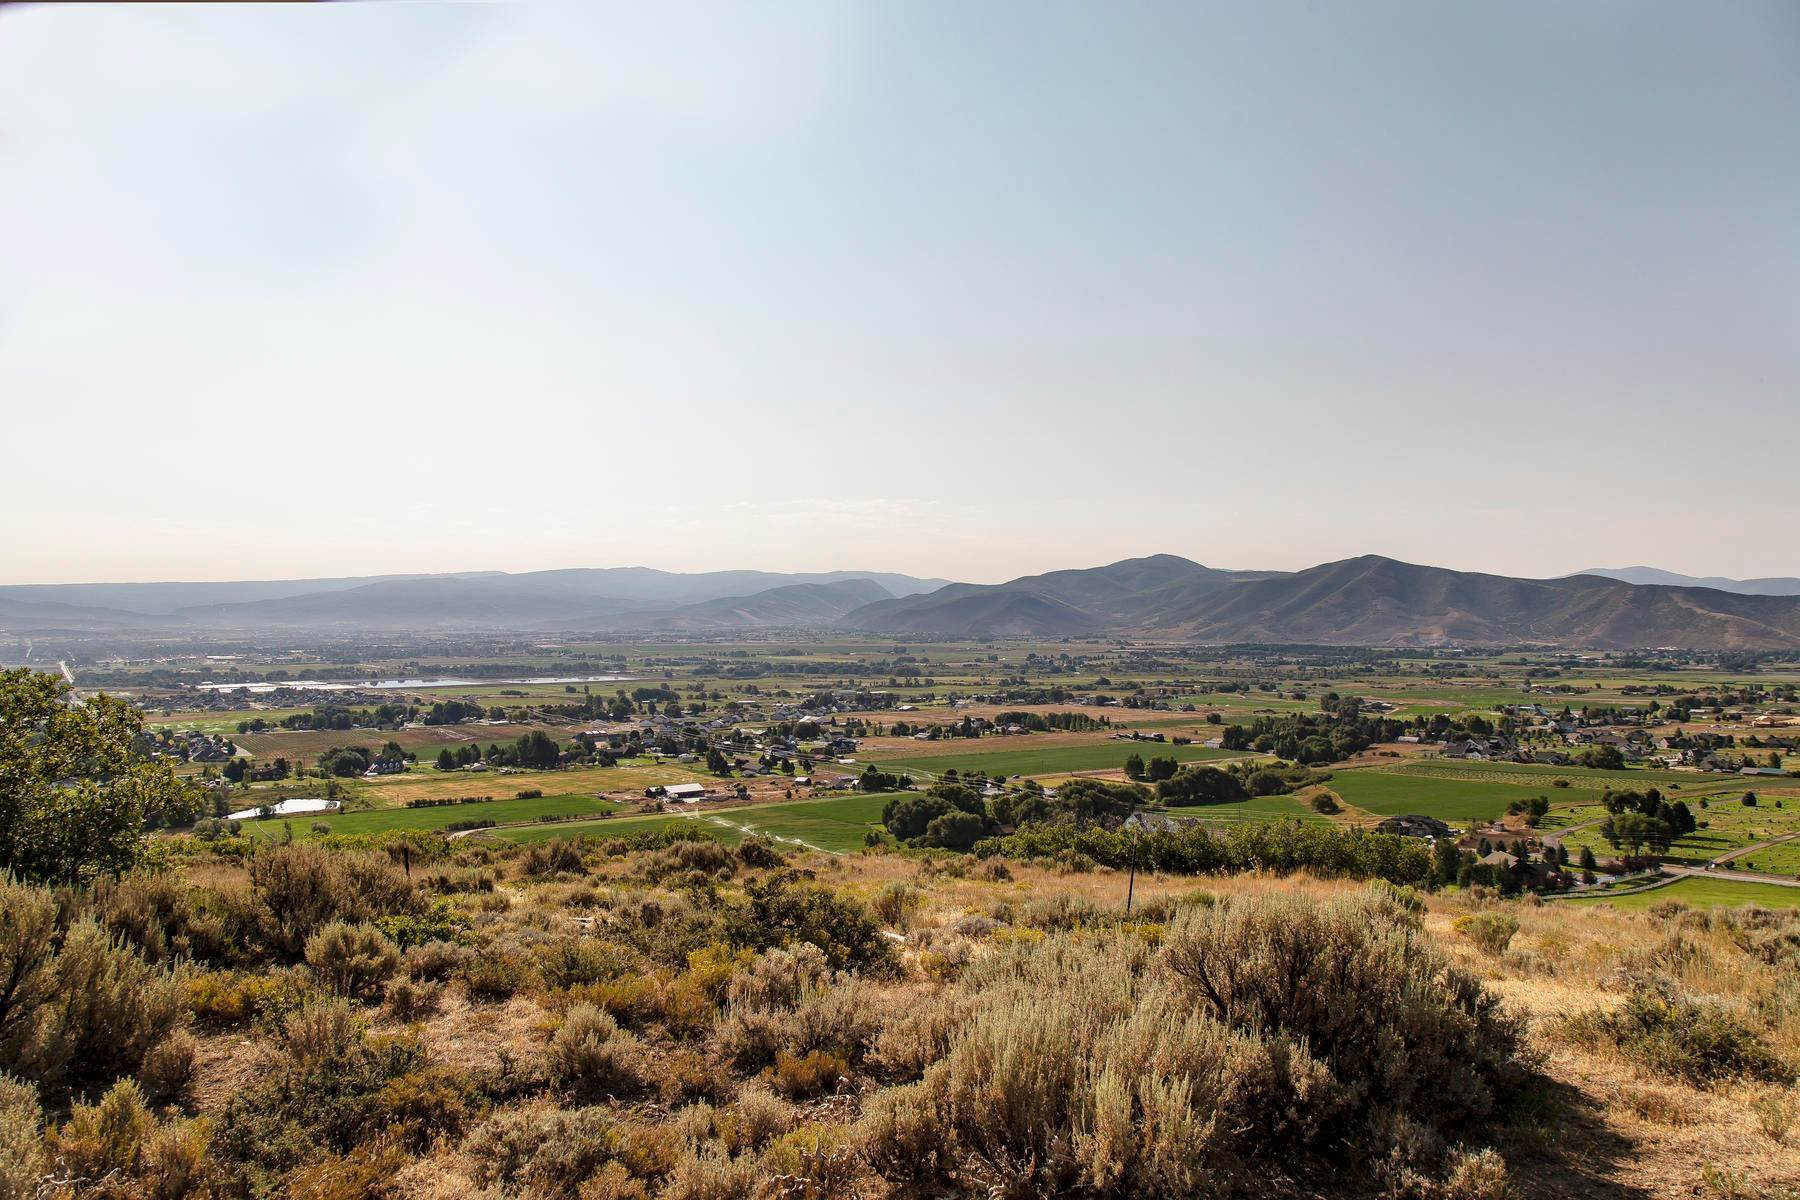 25. Land for Sale at 67 Acres in Midway with Huge Views of the Heber Valley 800 W 500 S Midway, Utah 84049 United States